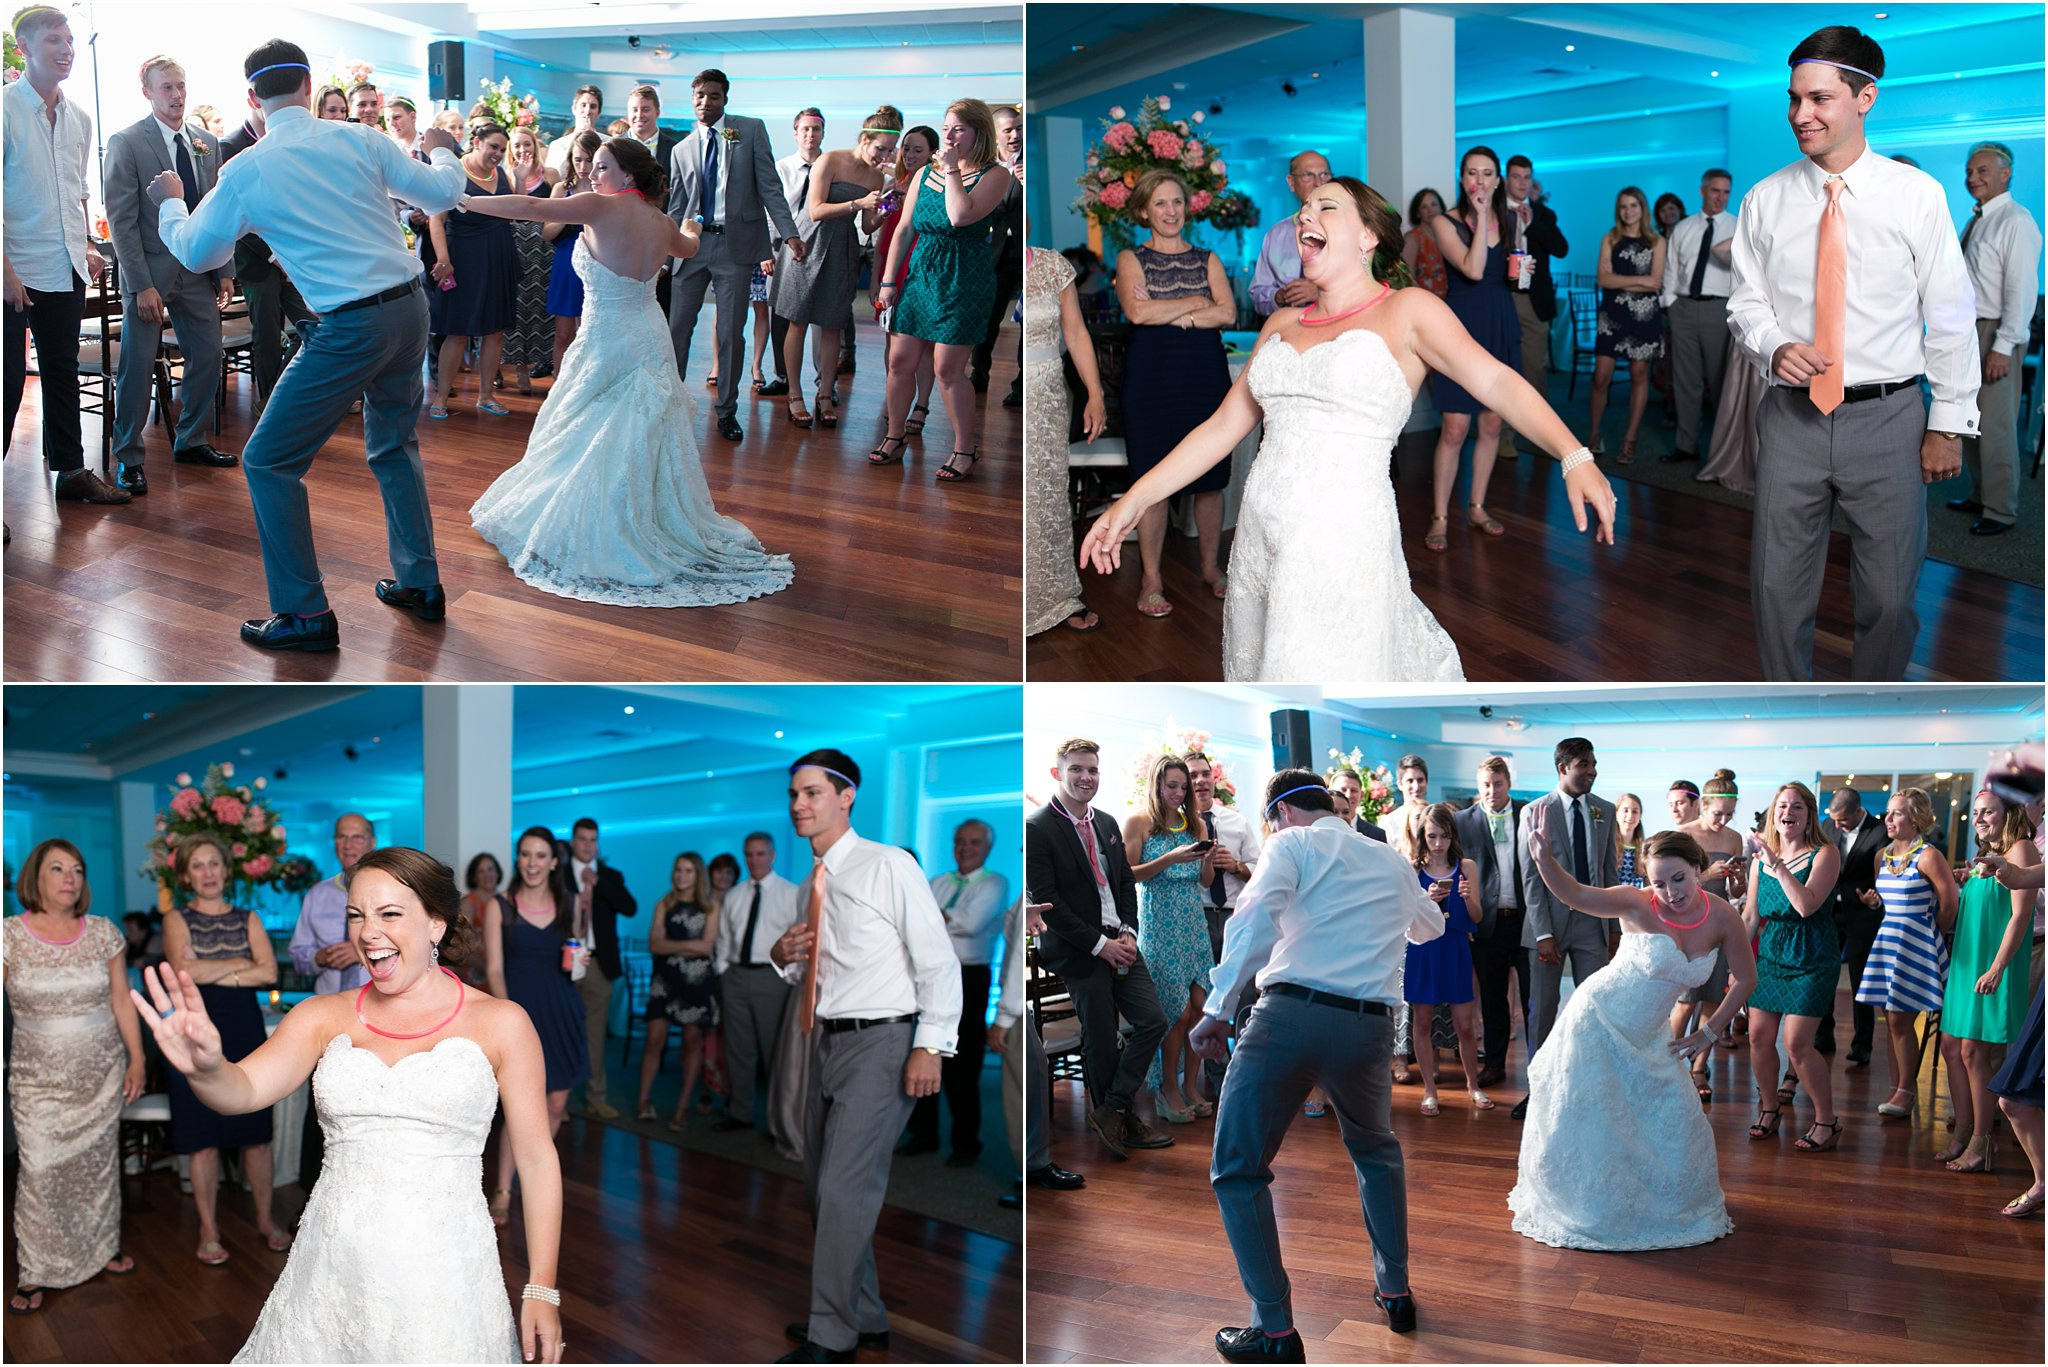 jessica_ryan_photography_wedding_photography_virginiabeach_virginia_candid_authentic_wedding_portraits_marina_shores_yacht_club_chesapeake_bay_1969